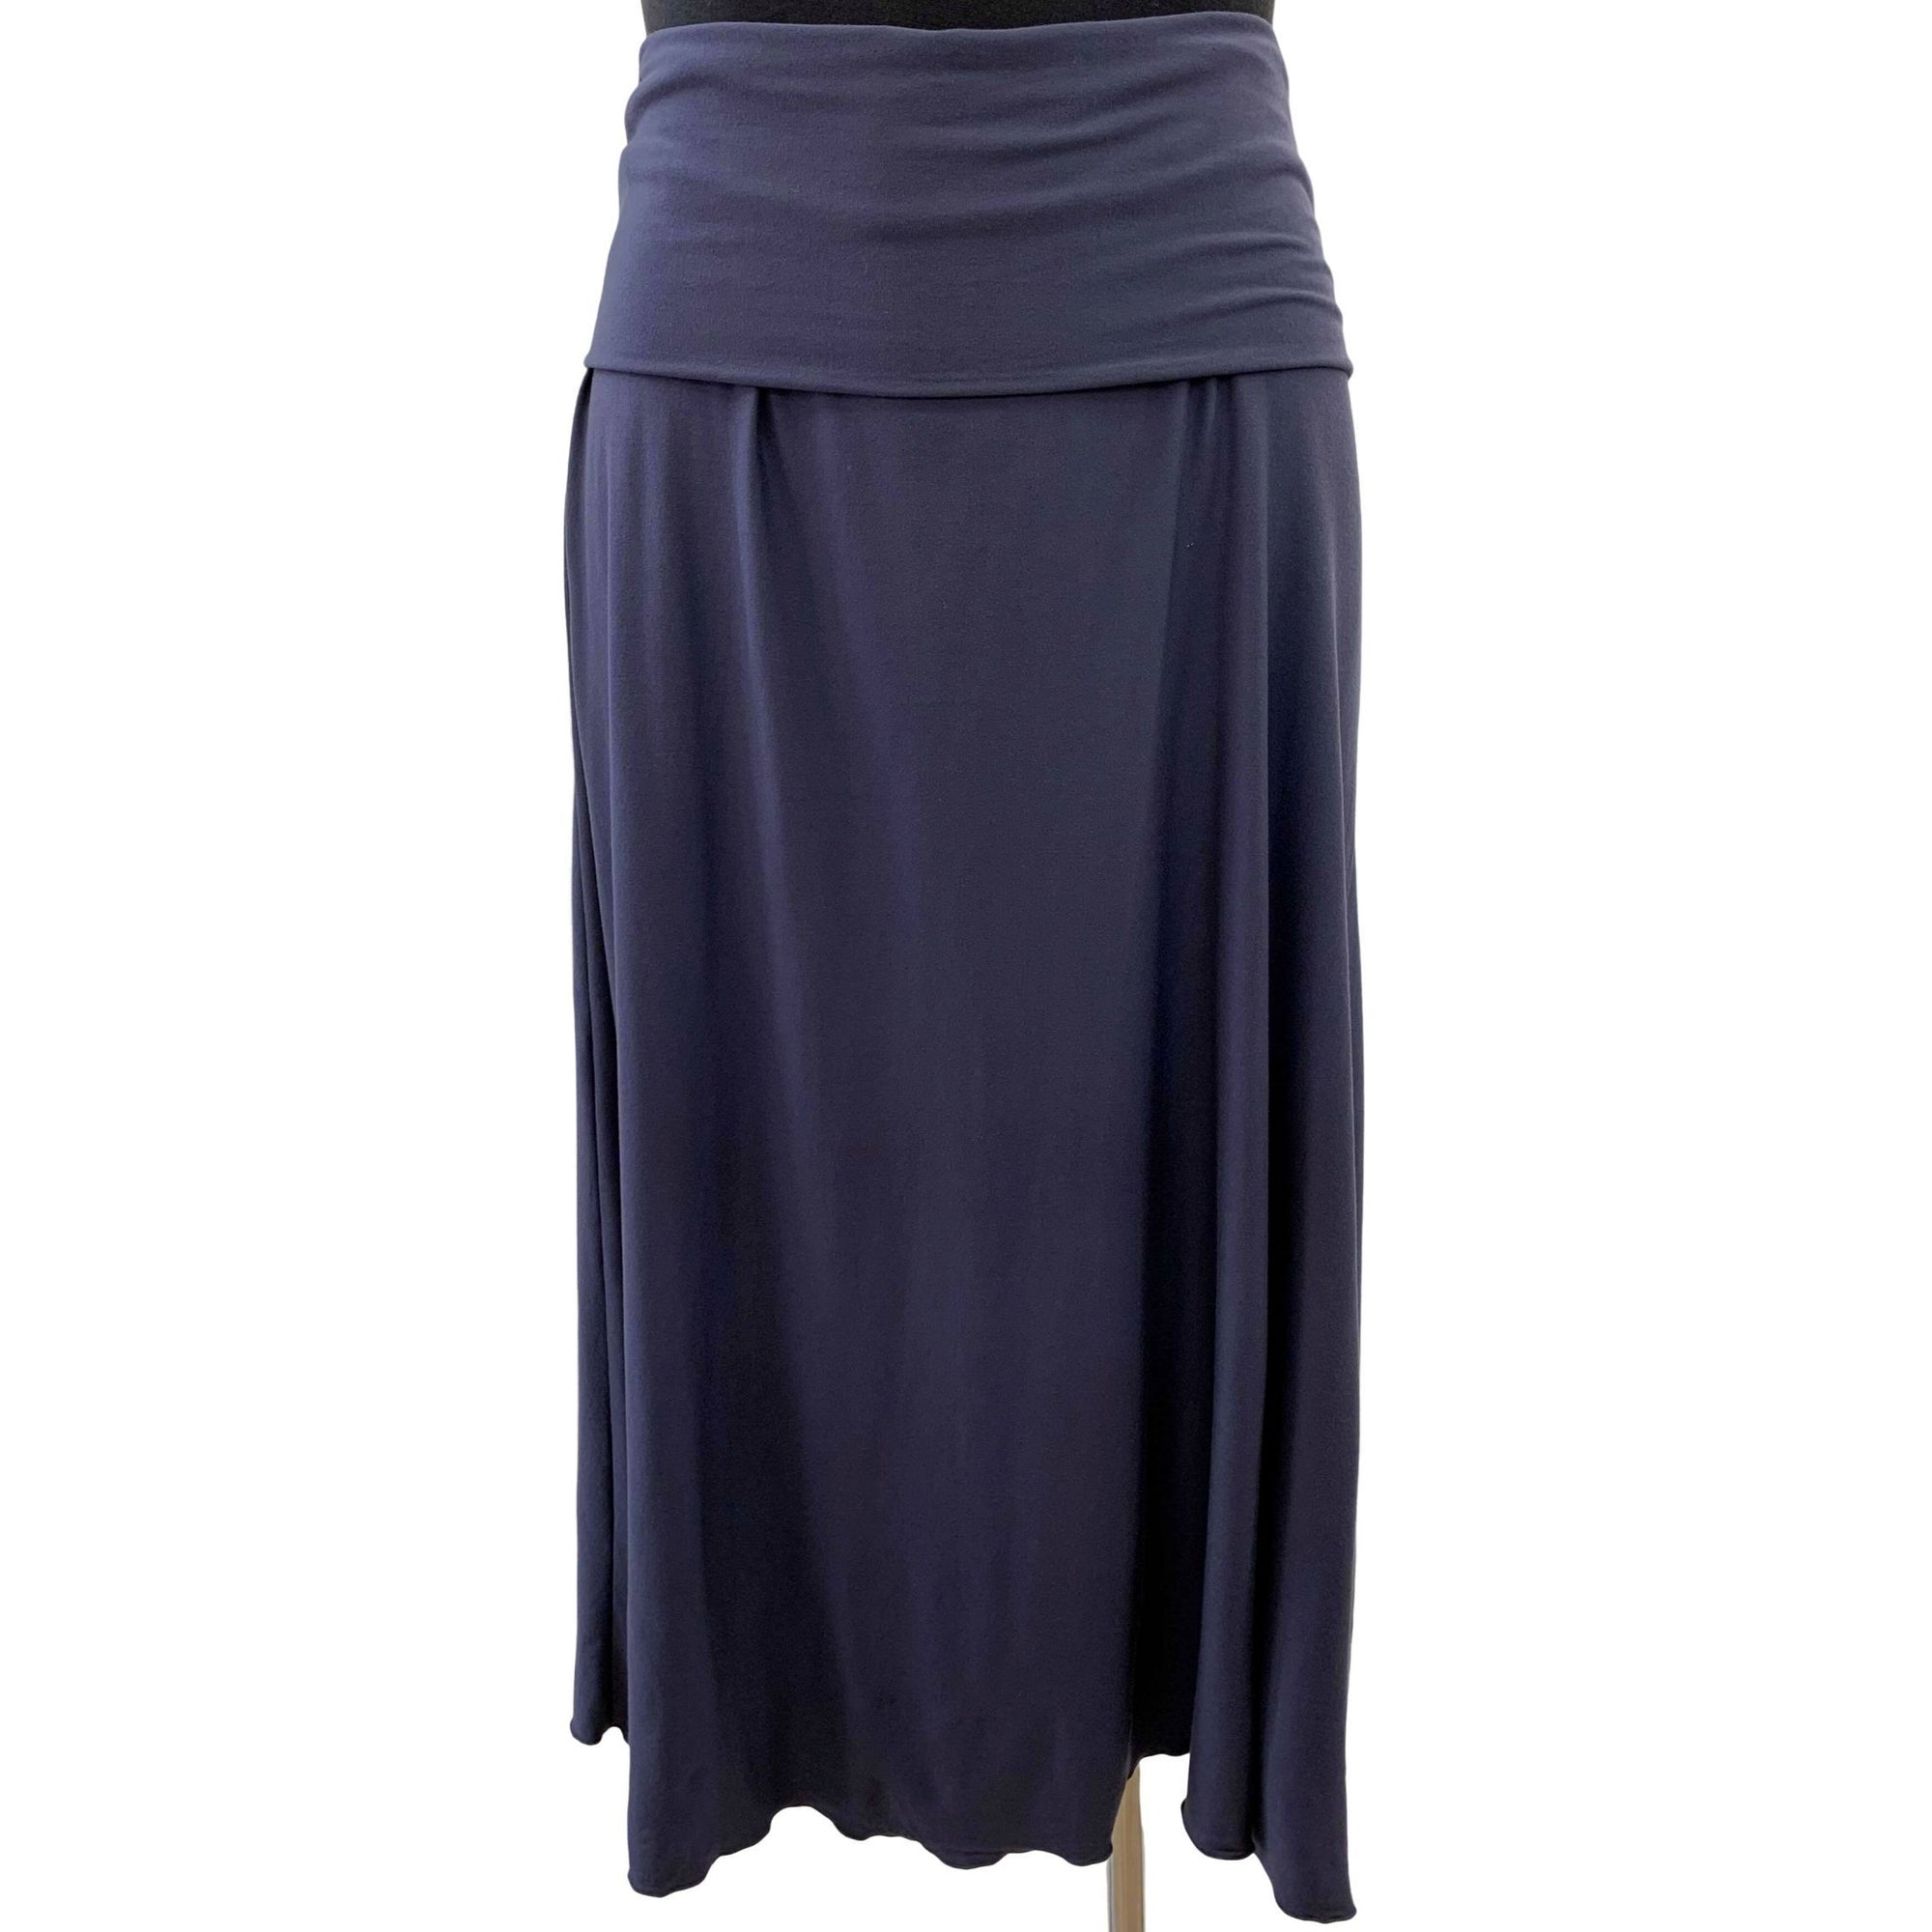 Soulsong Most Loved Skirt in Truffle